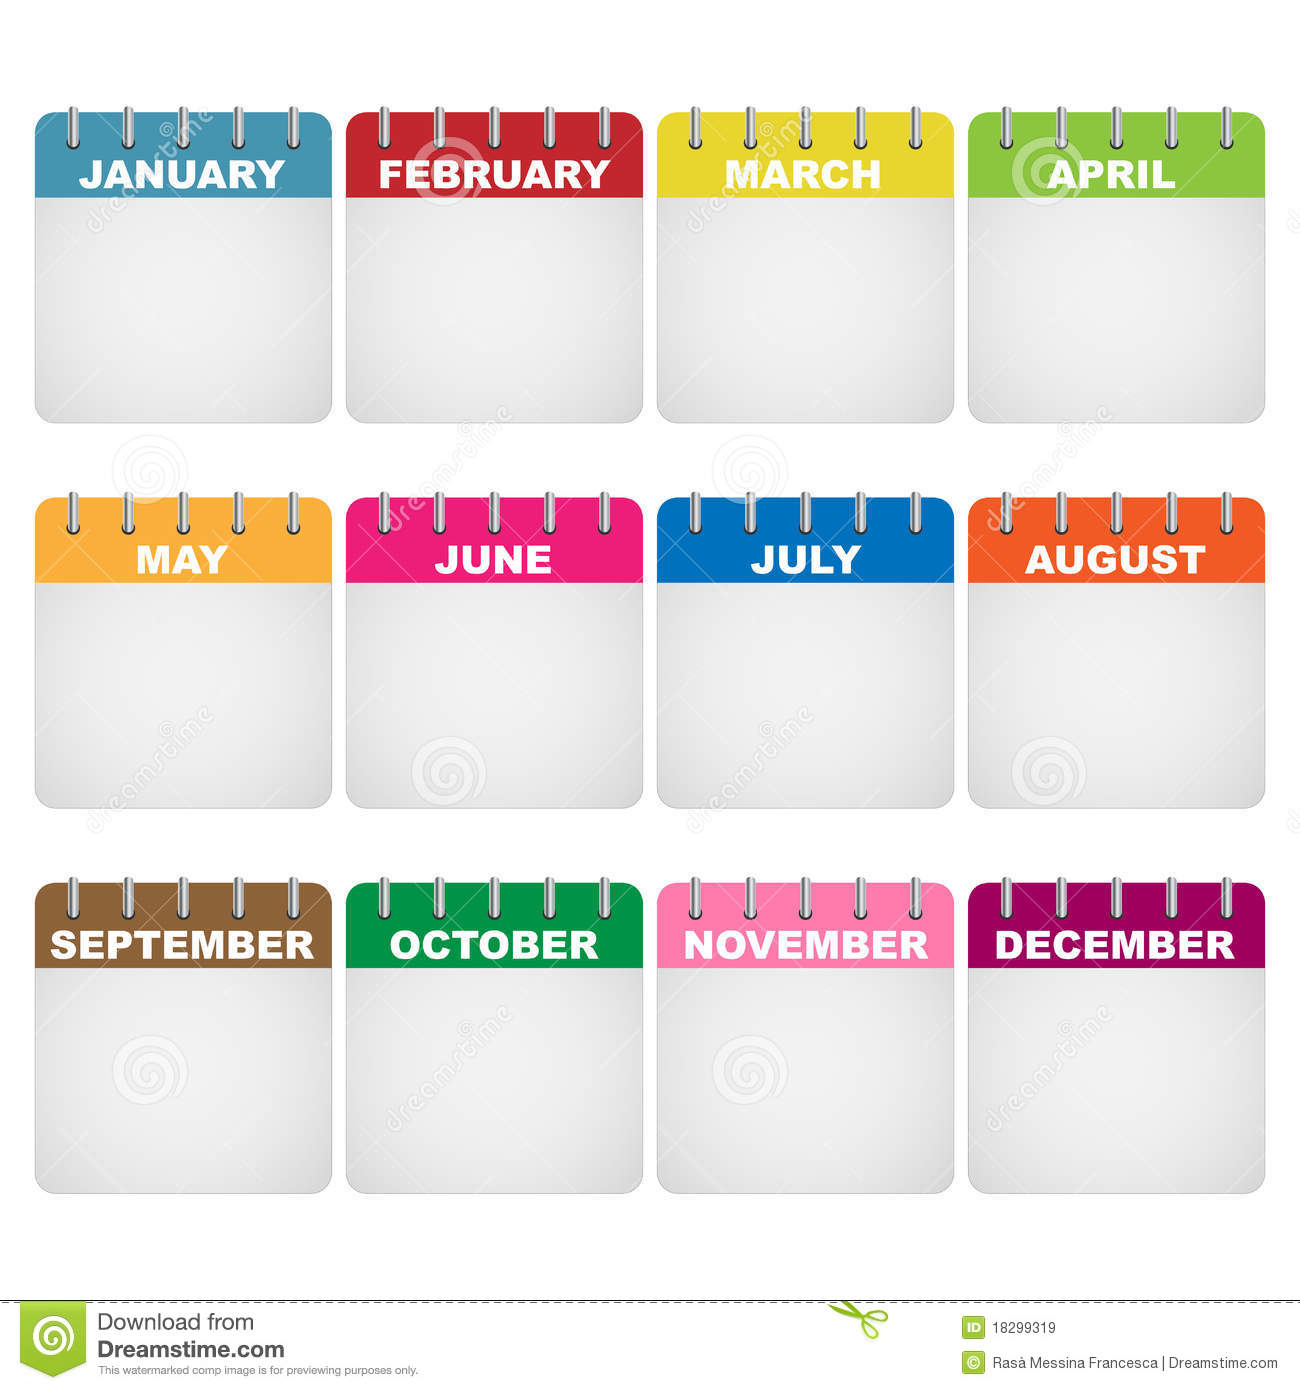 Monthly Calendar Clipart : Empty calendar icon images lamb lettuce leaves